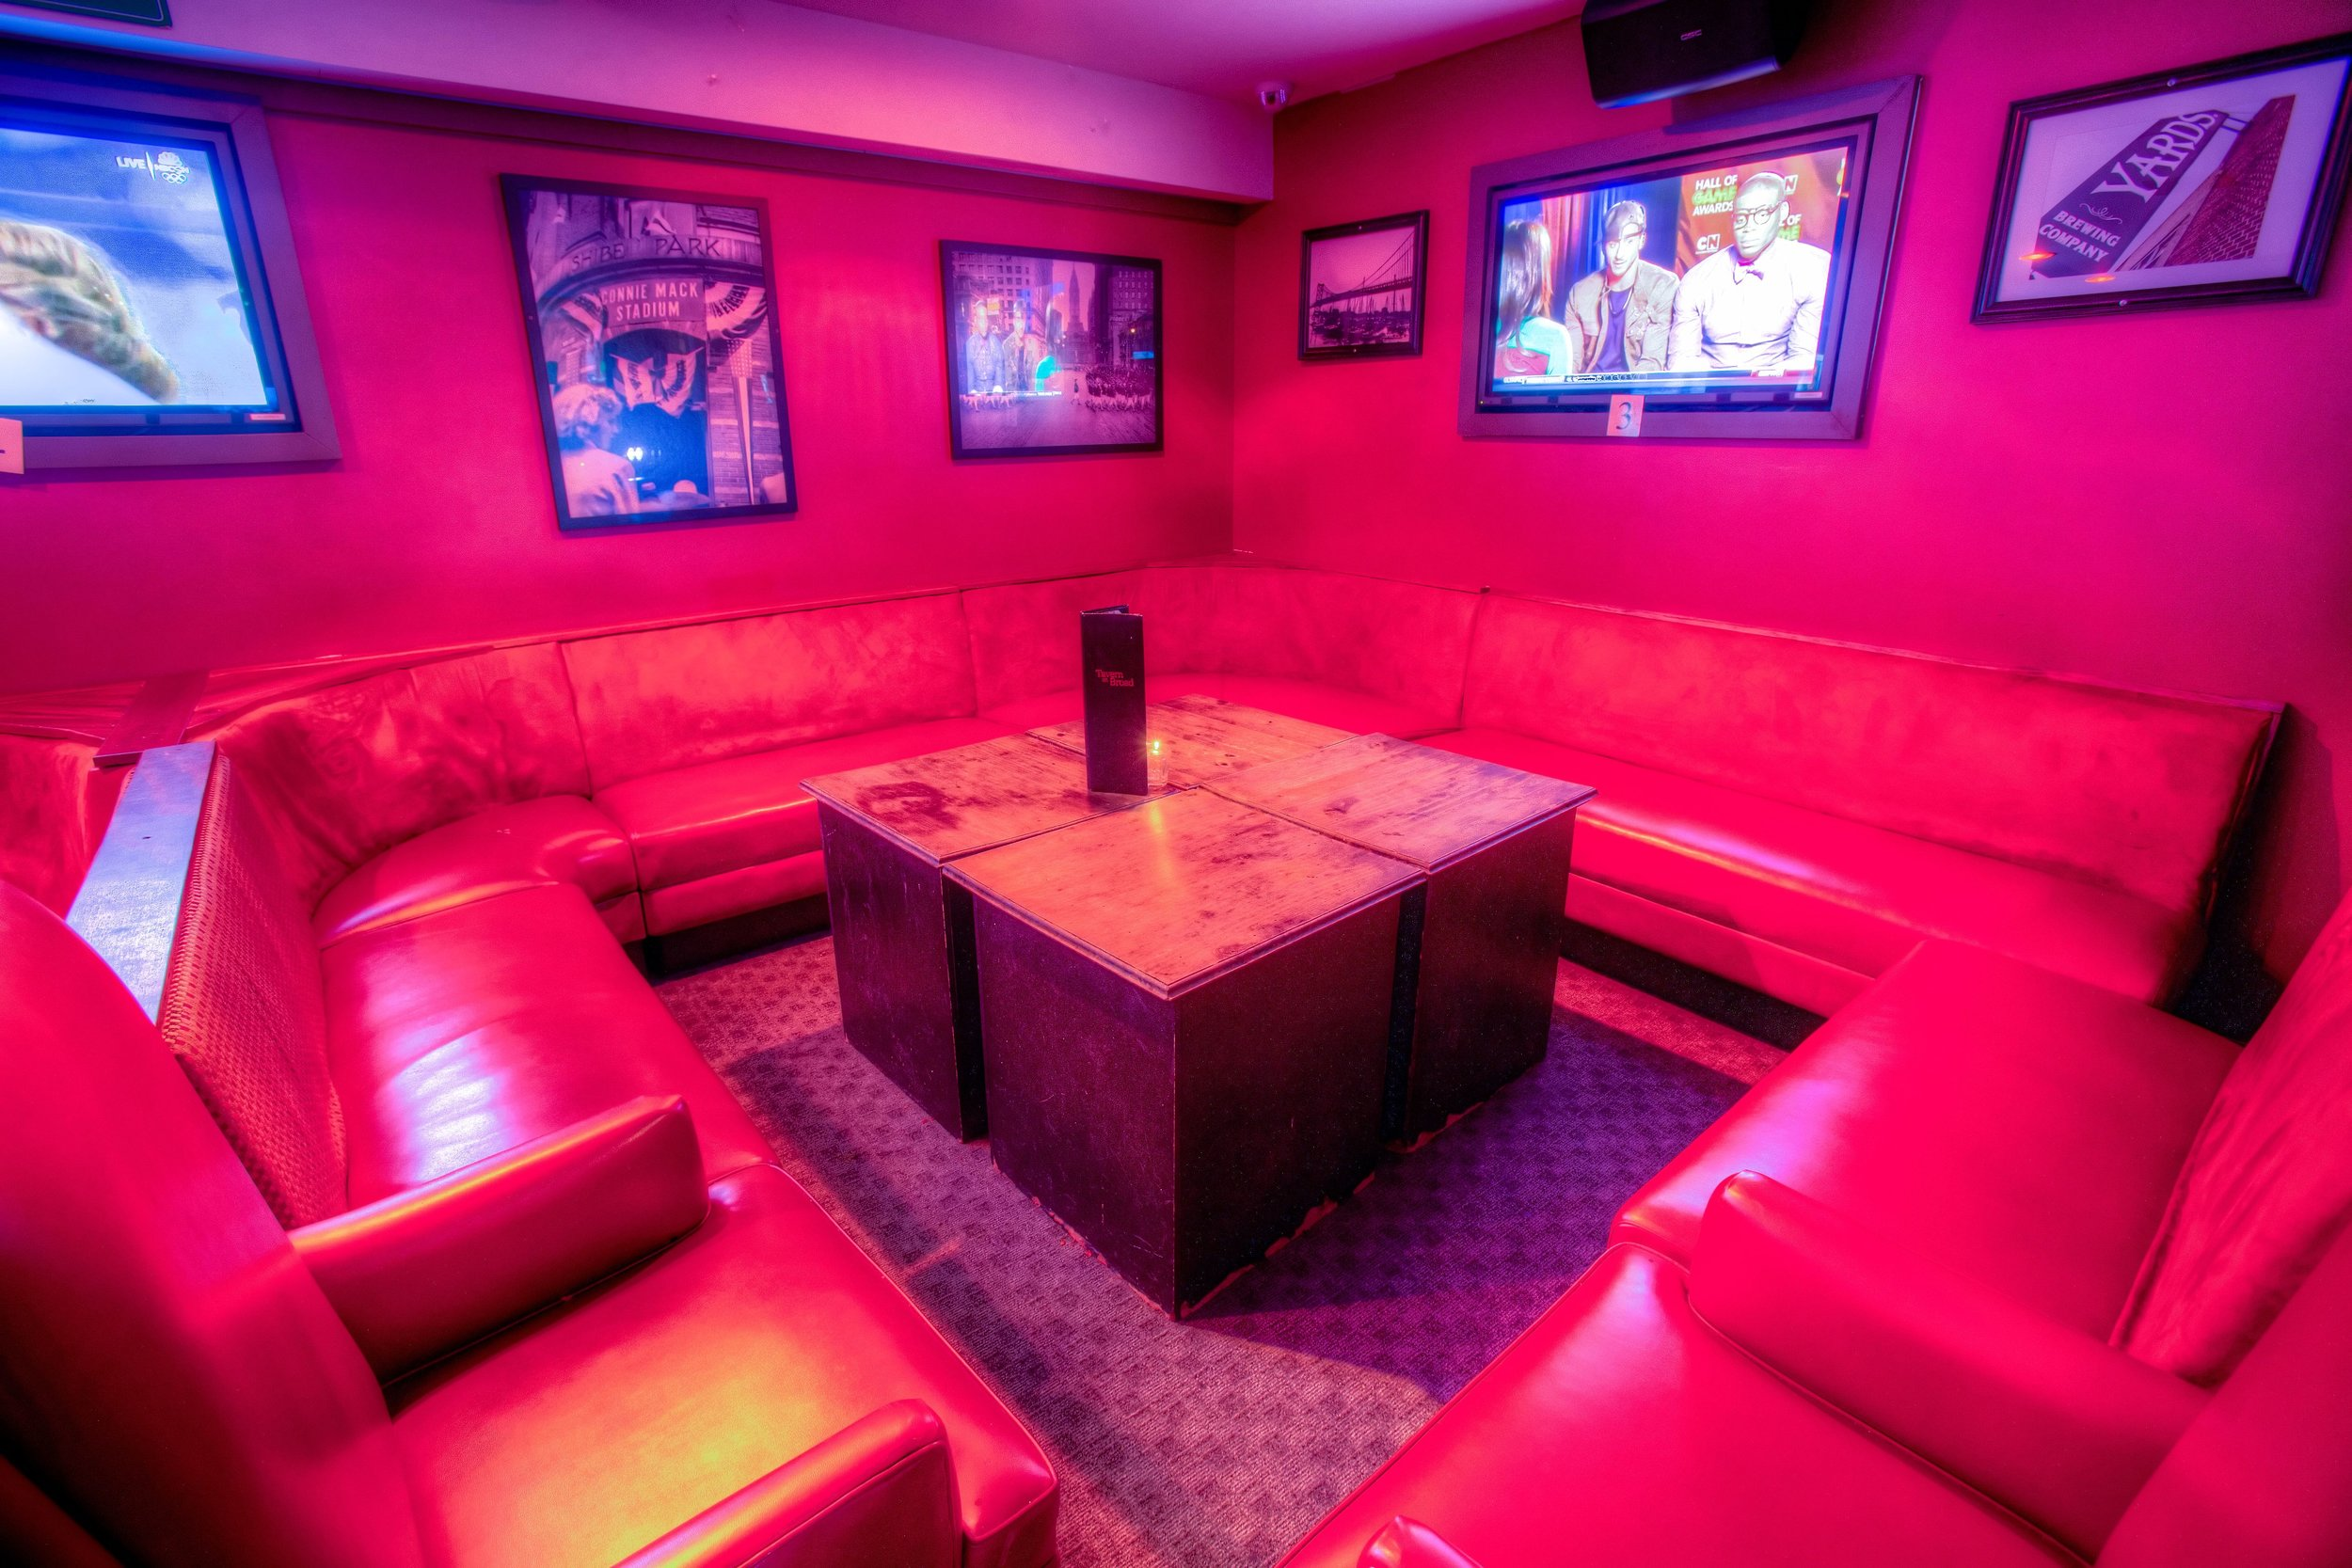 The Red Light Lounge